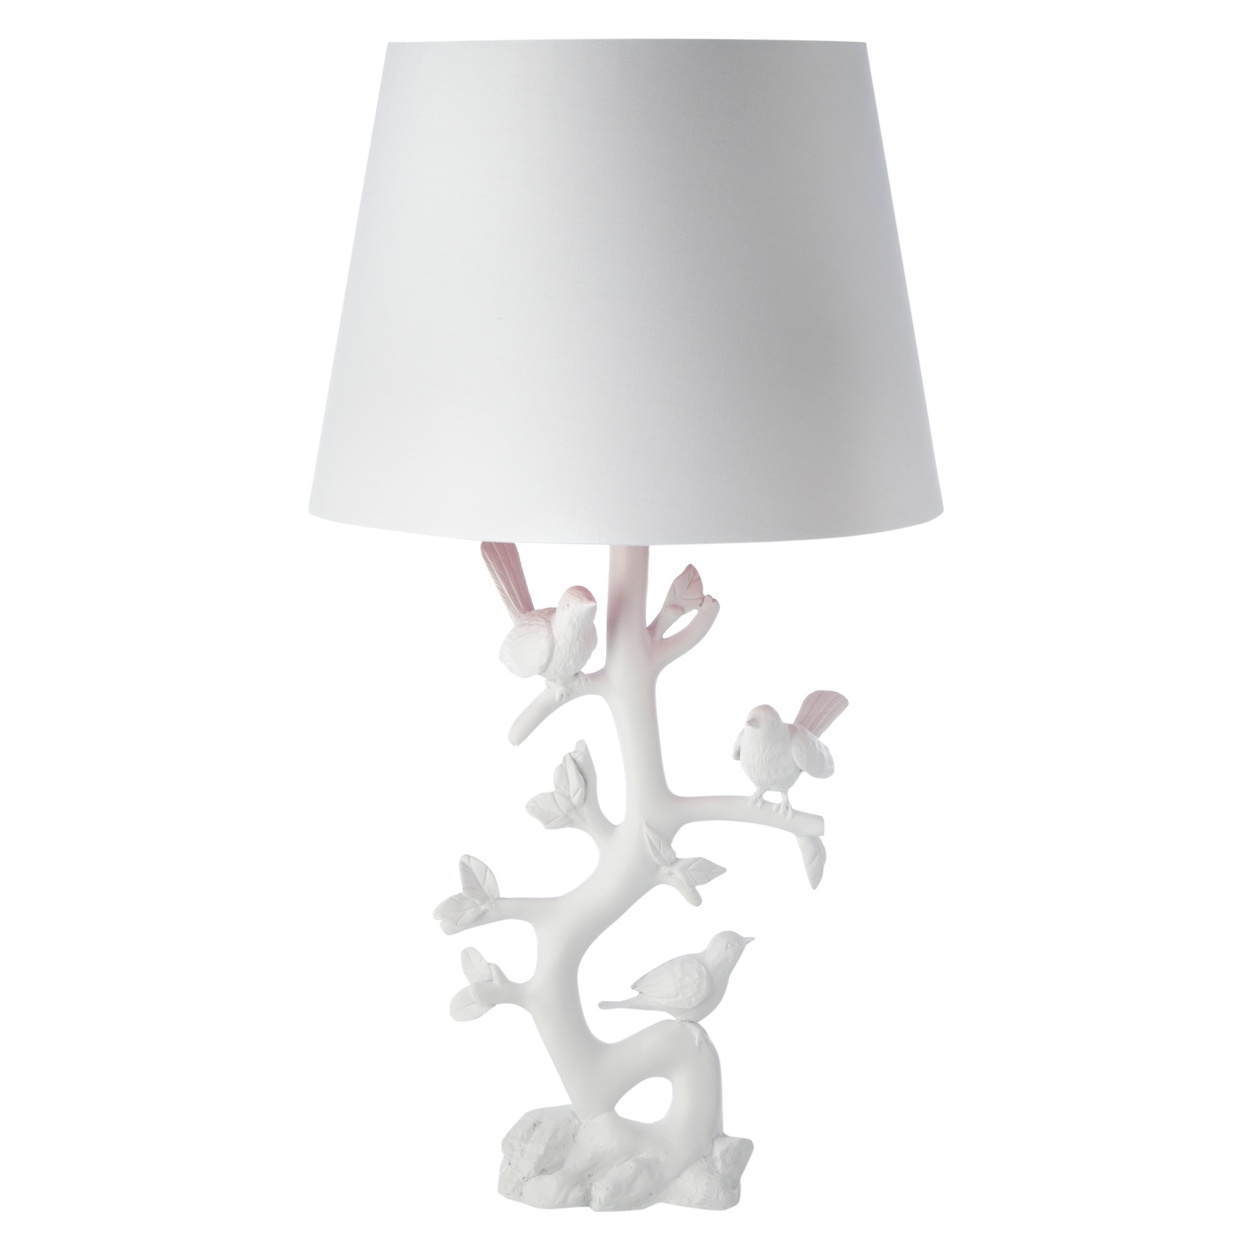 placemathieu mathieu lamp goodge bird lamps challieres